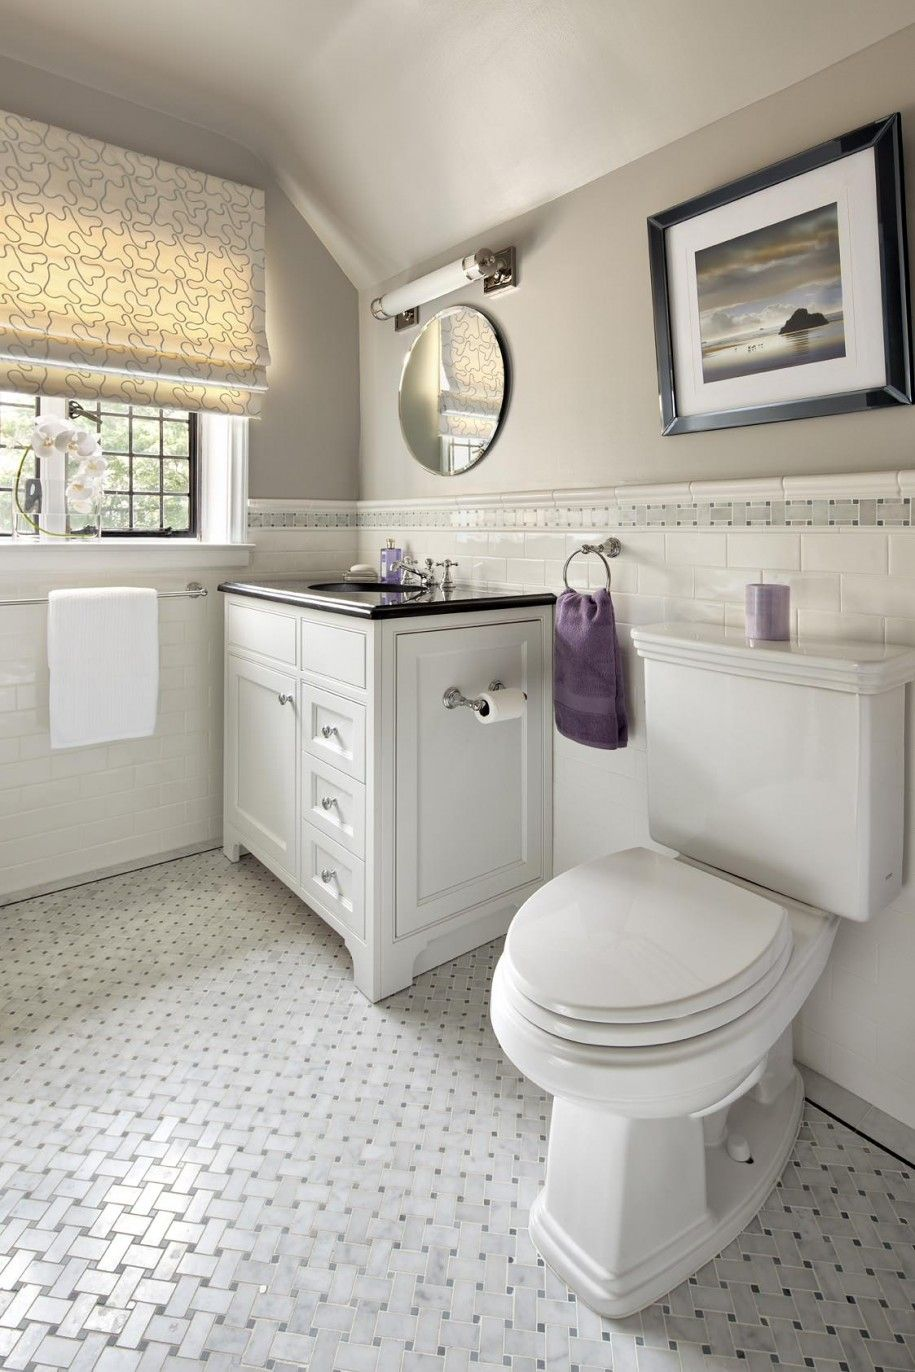 Stunning Basket Weave Tile For Classic Bathroom Design: Cool Bathroom Ideas  With Towel Hook And Vanity Cabinet Also Window Shades With Basket Weave  Tile ...